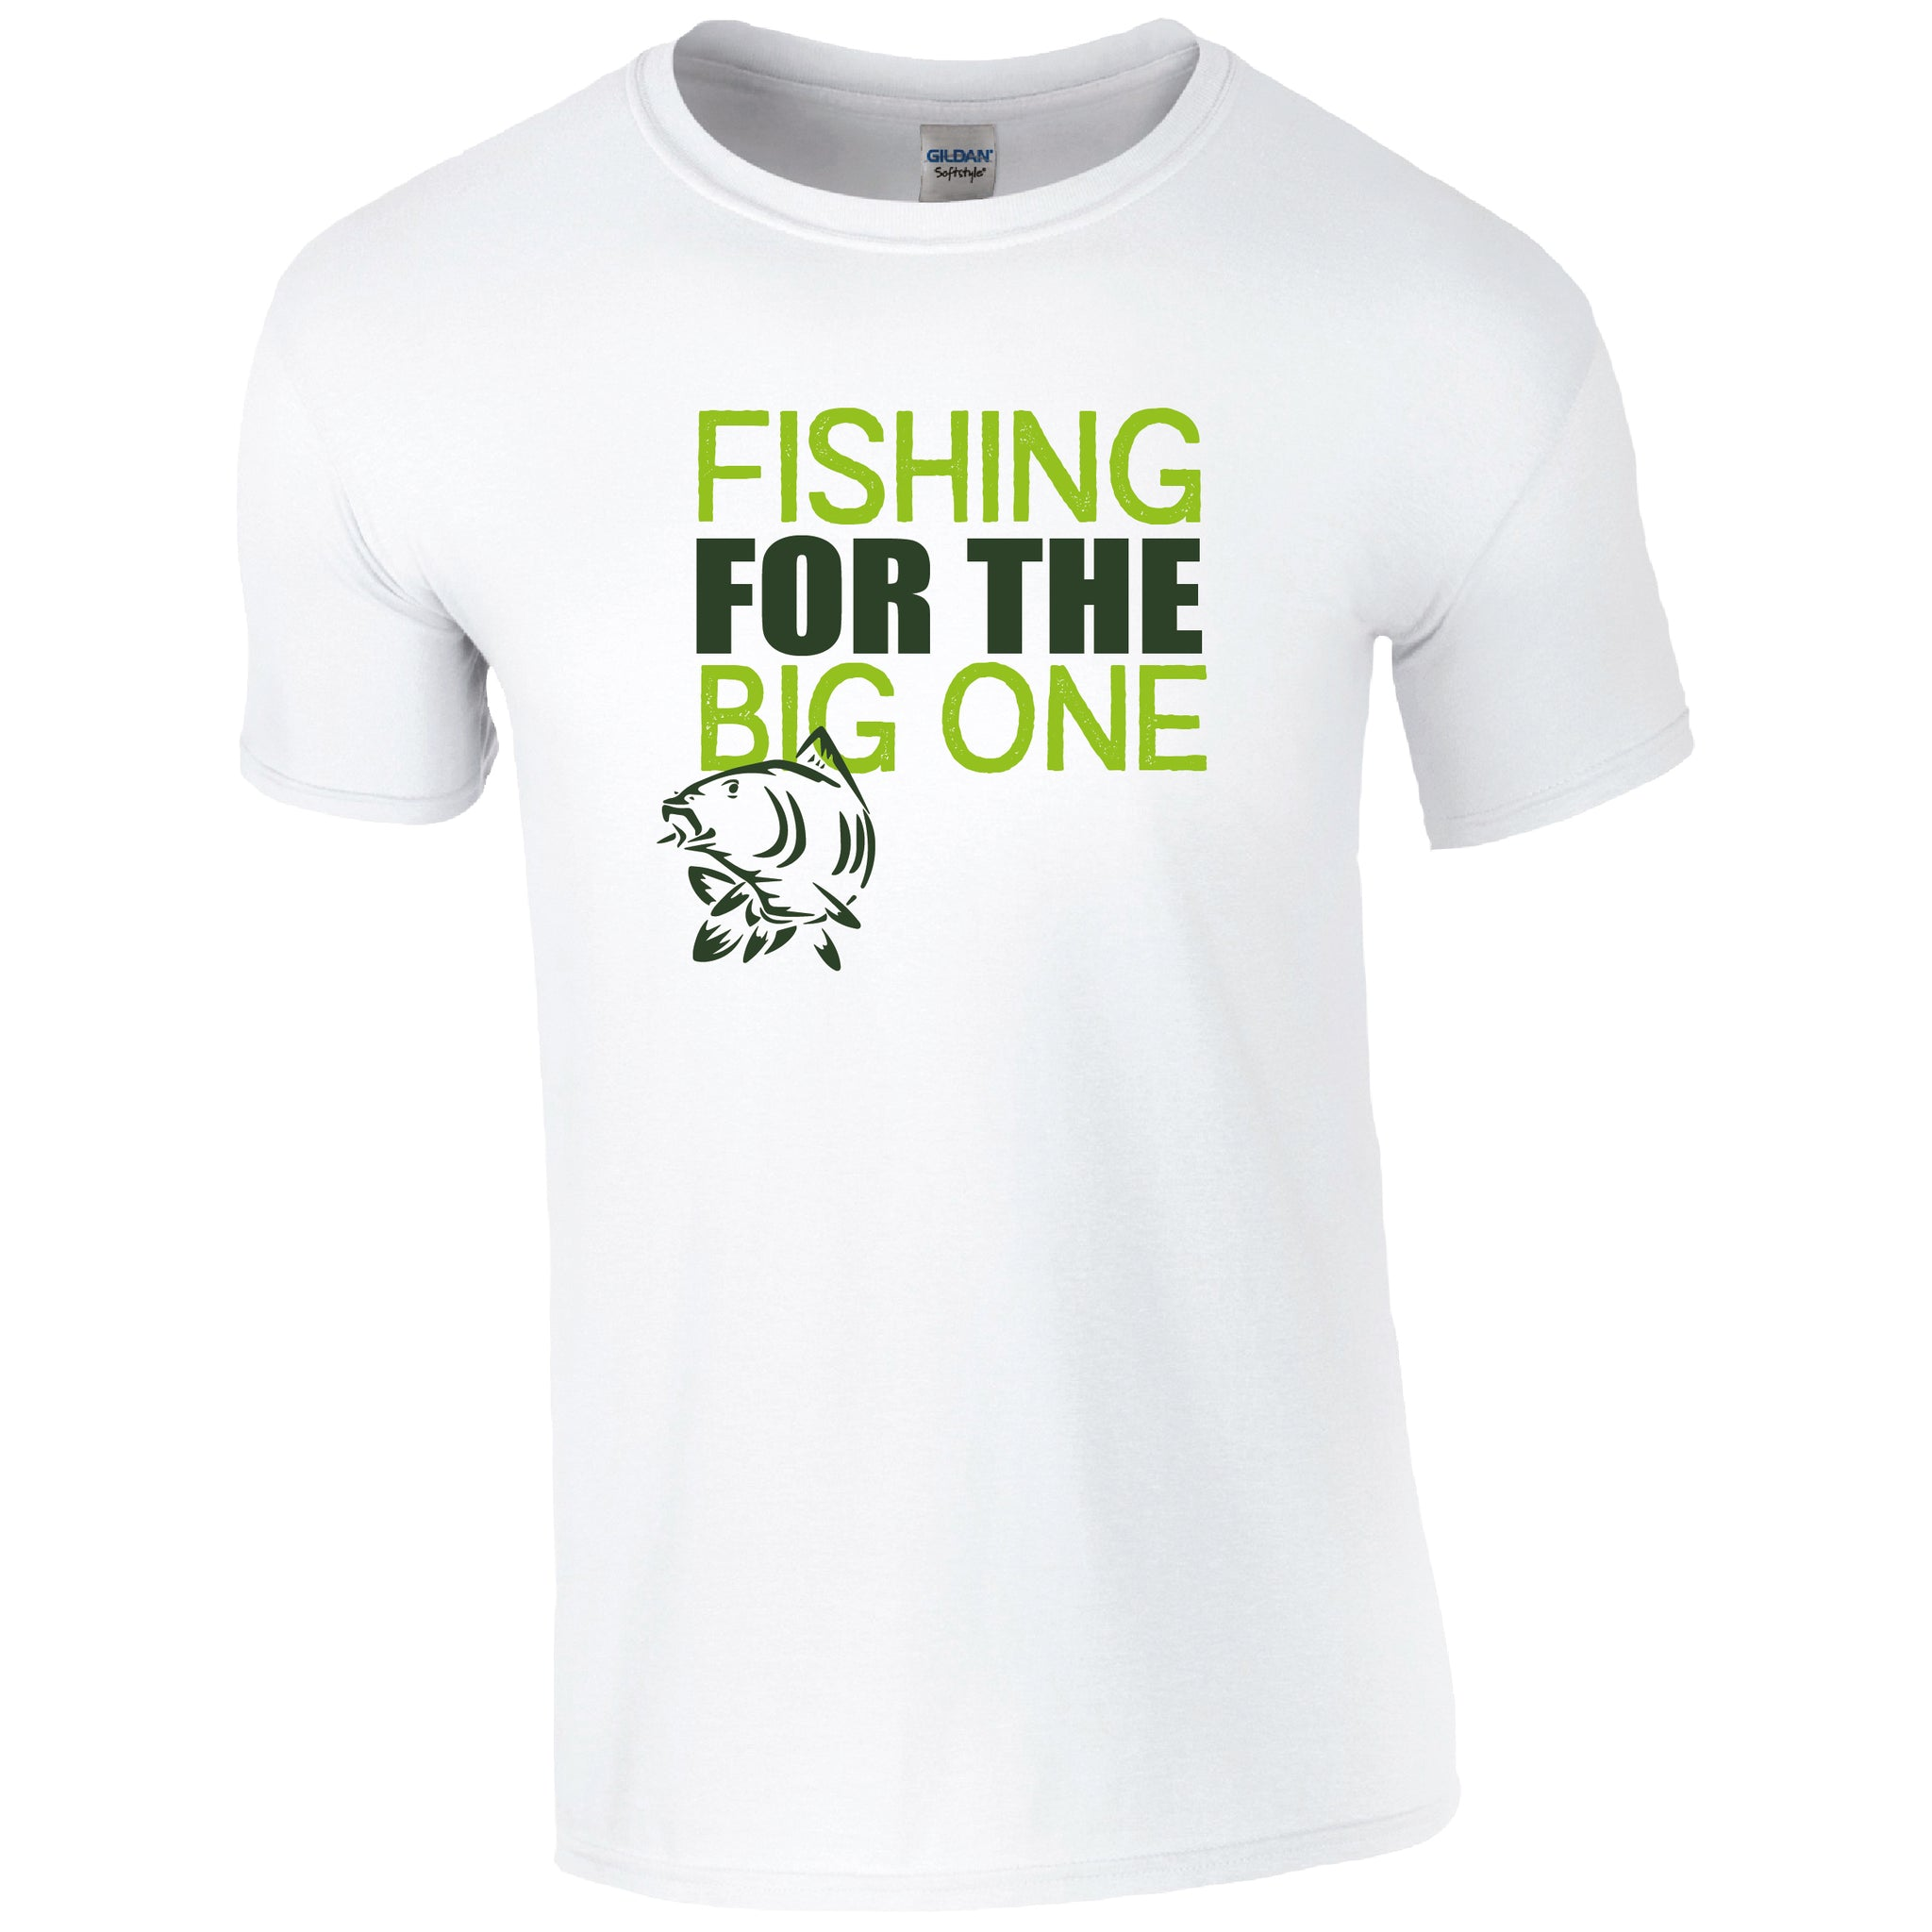 Fishing for the big one, Fishing Humour T-shirt